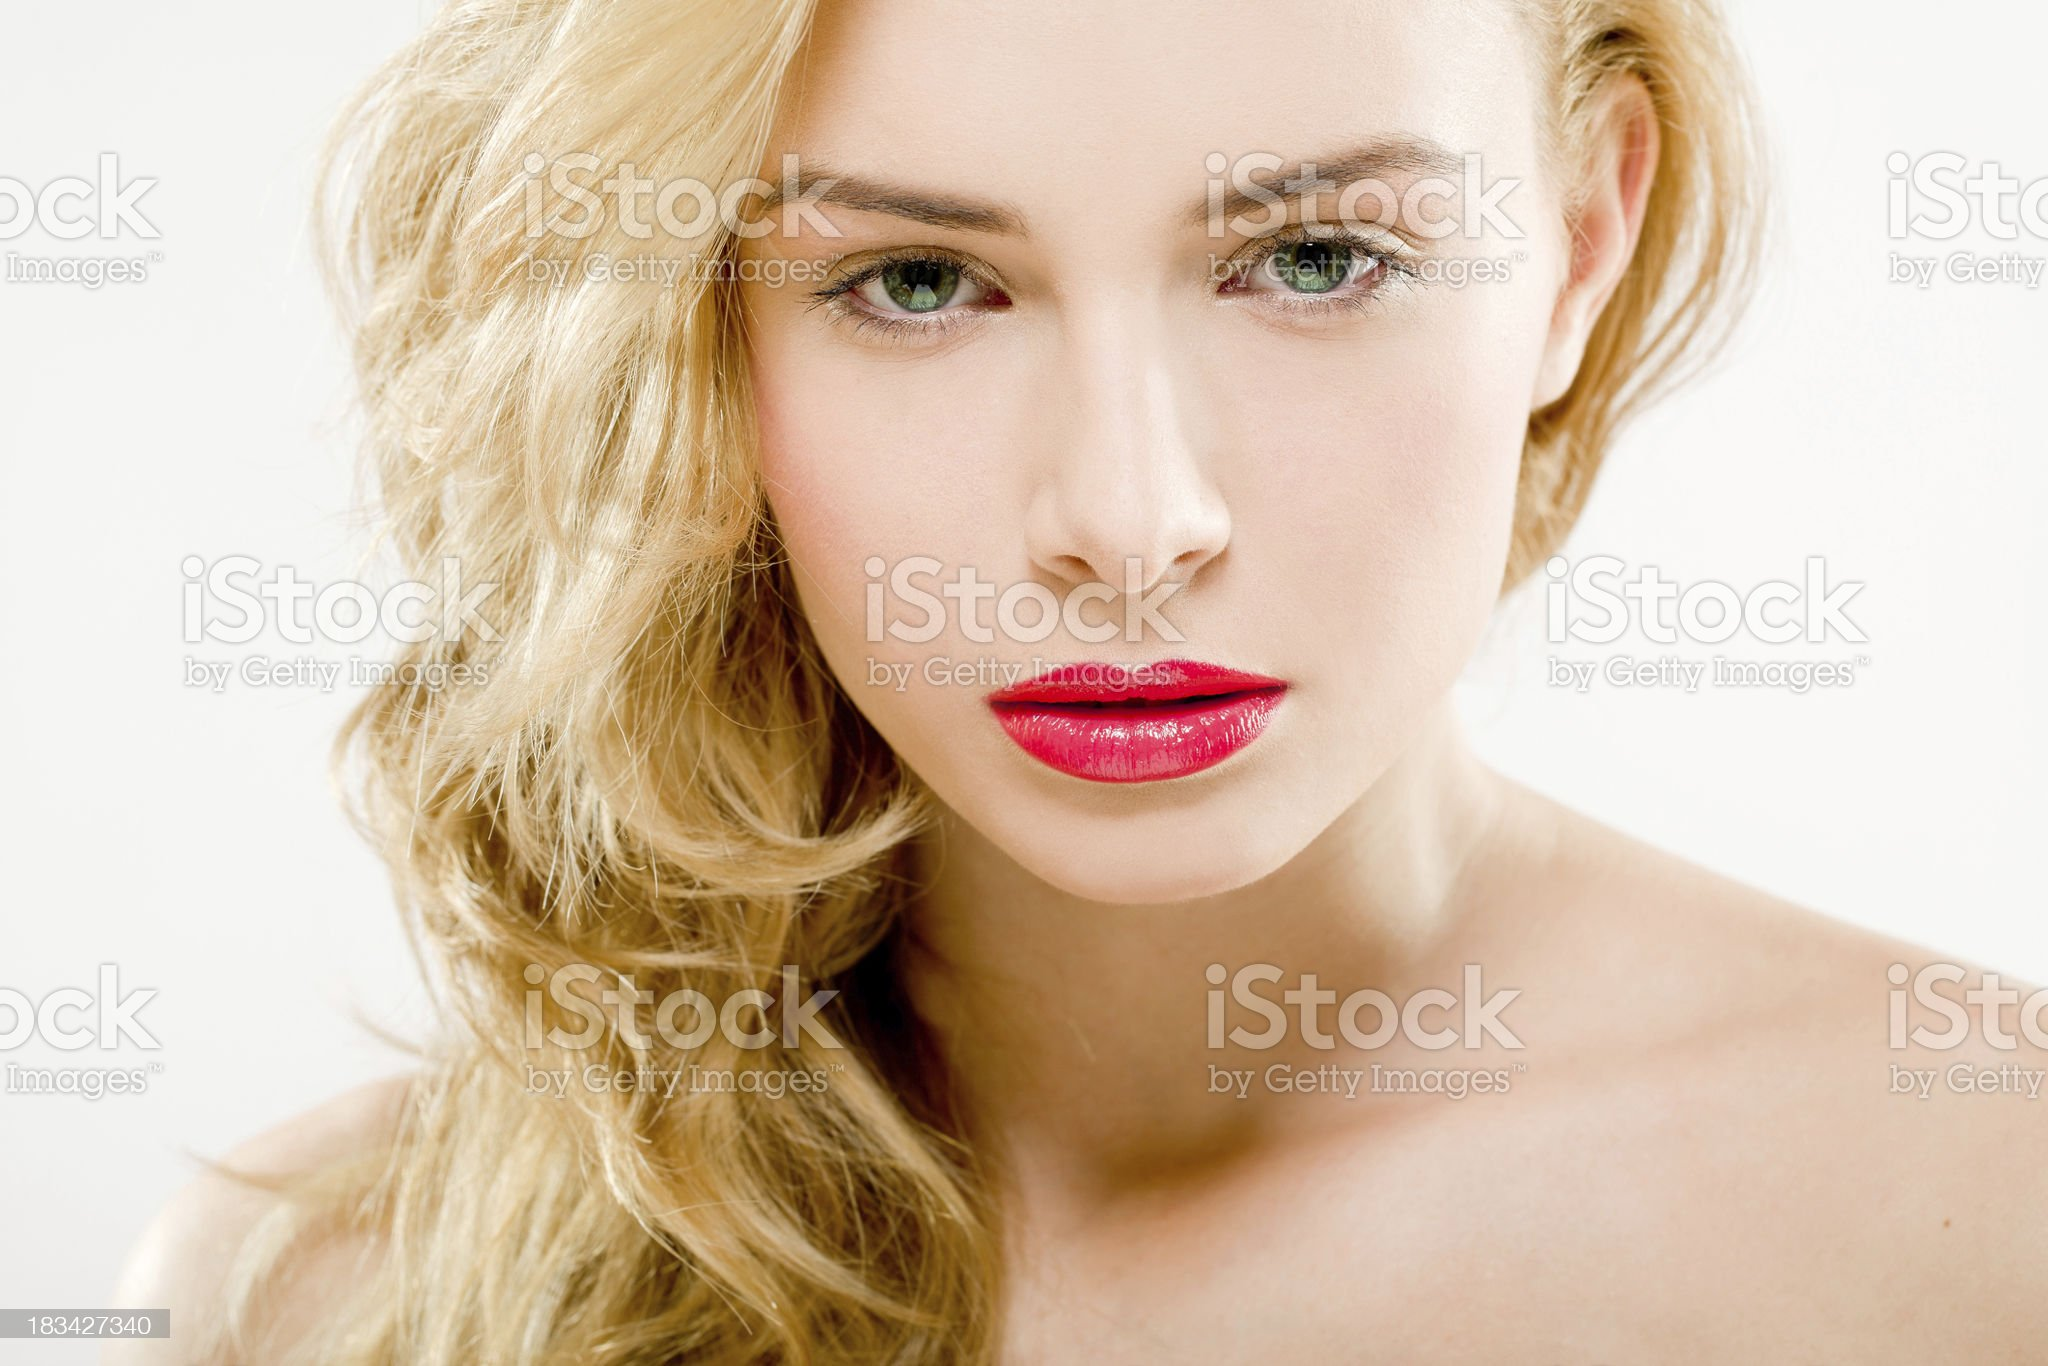 professional makeup royalty-free stock photo